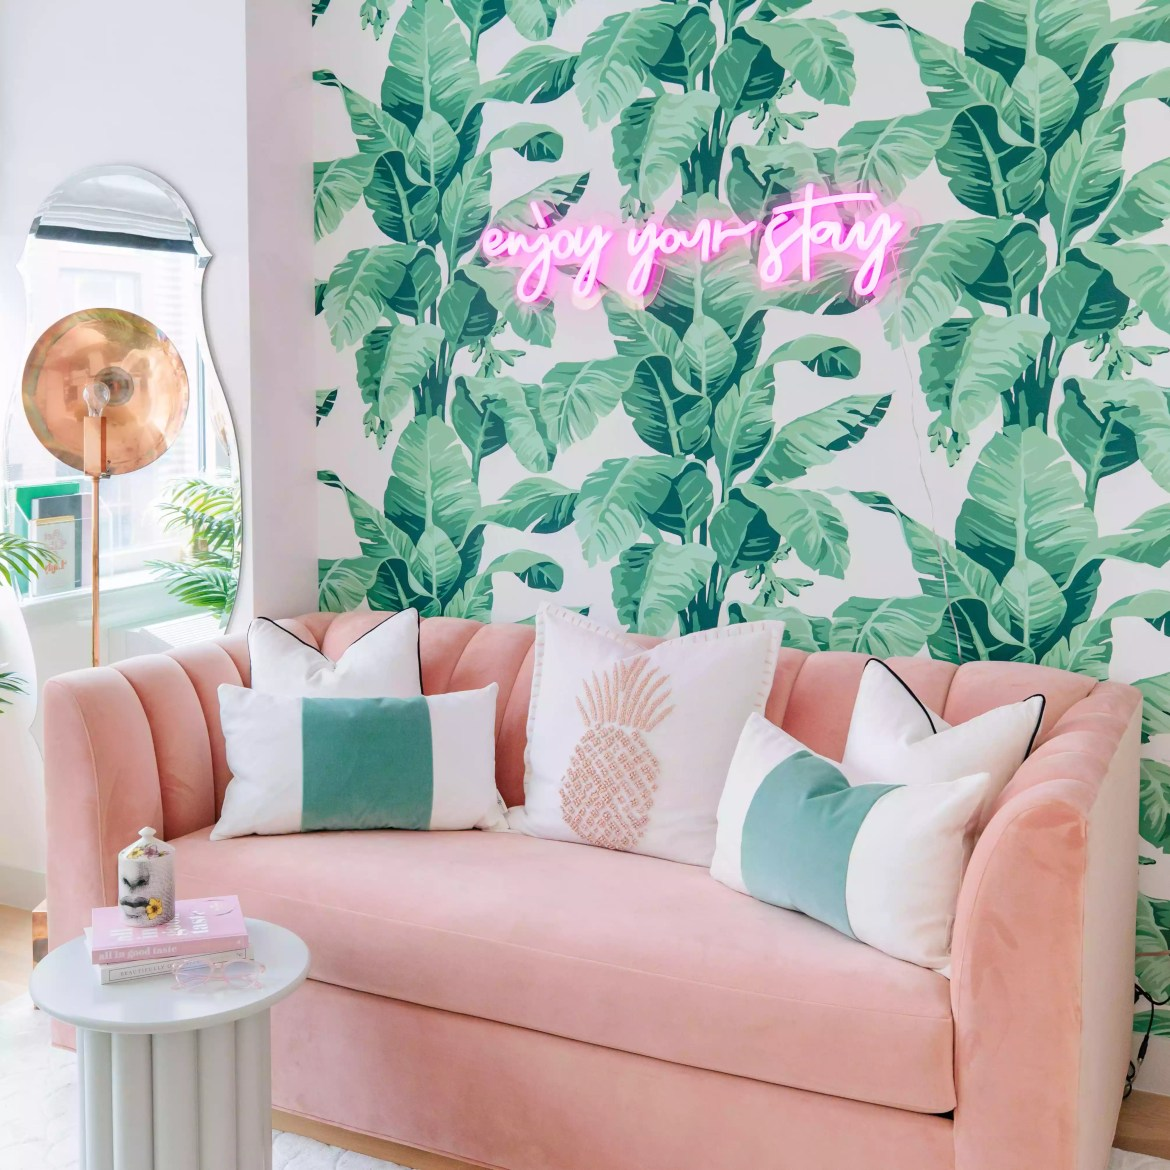 Guest room with banana leaf wallpaper and neon sign.